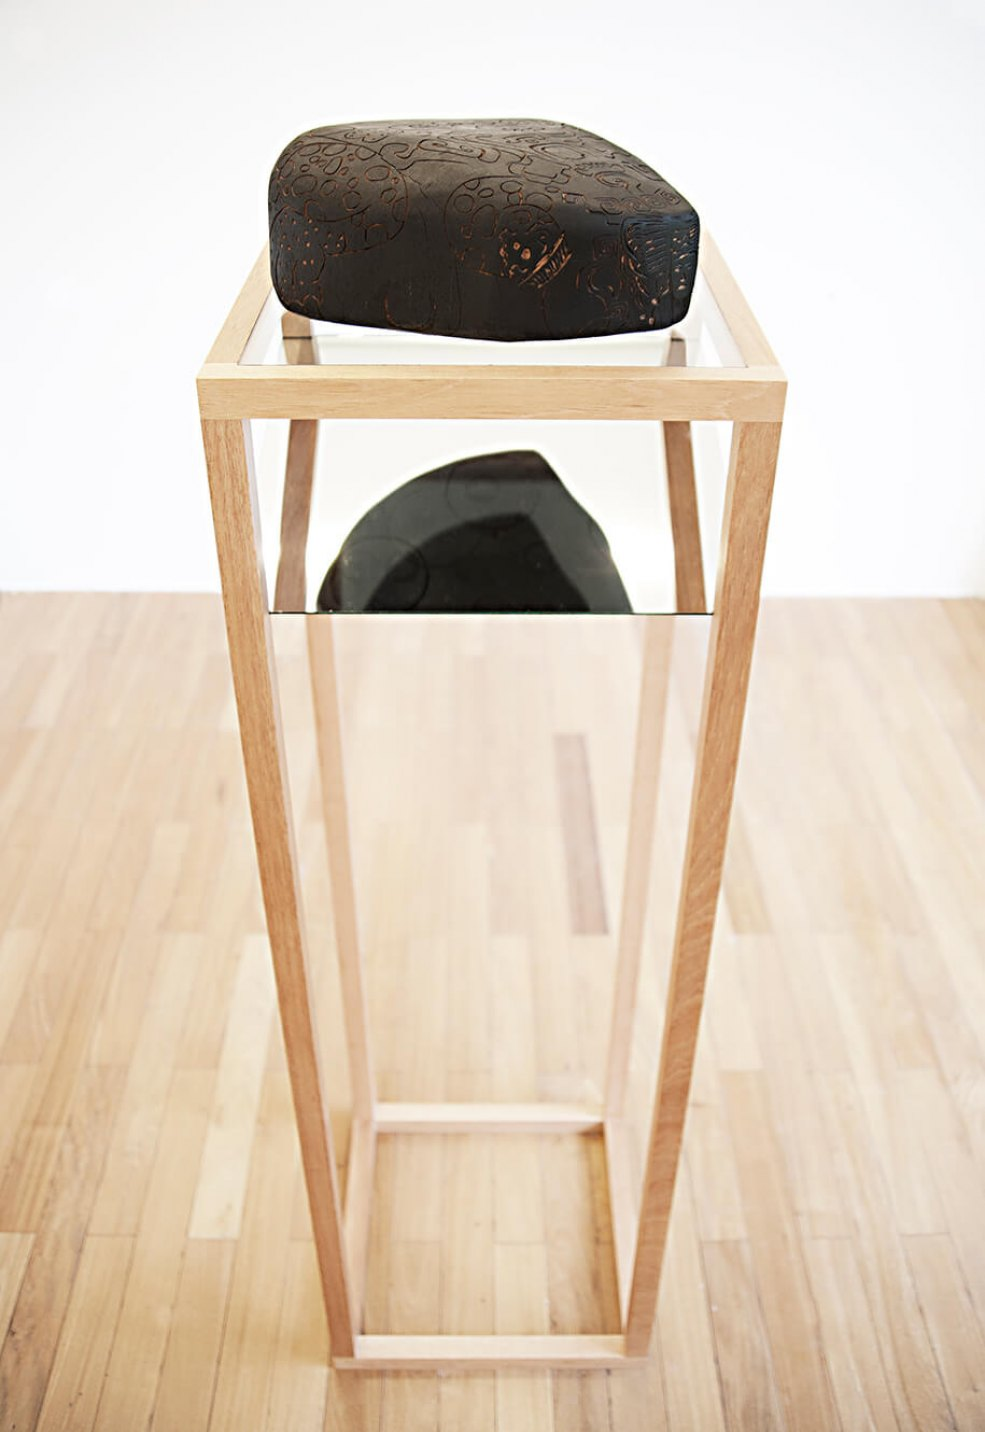 Mariana Castillo Deball,<em> Zoomorph G, </em>2013, wooden carved sculpture mounted on base with mirror, 155 × 40 × 40 cm - Mendes Wood DM